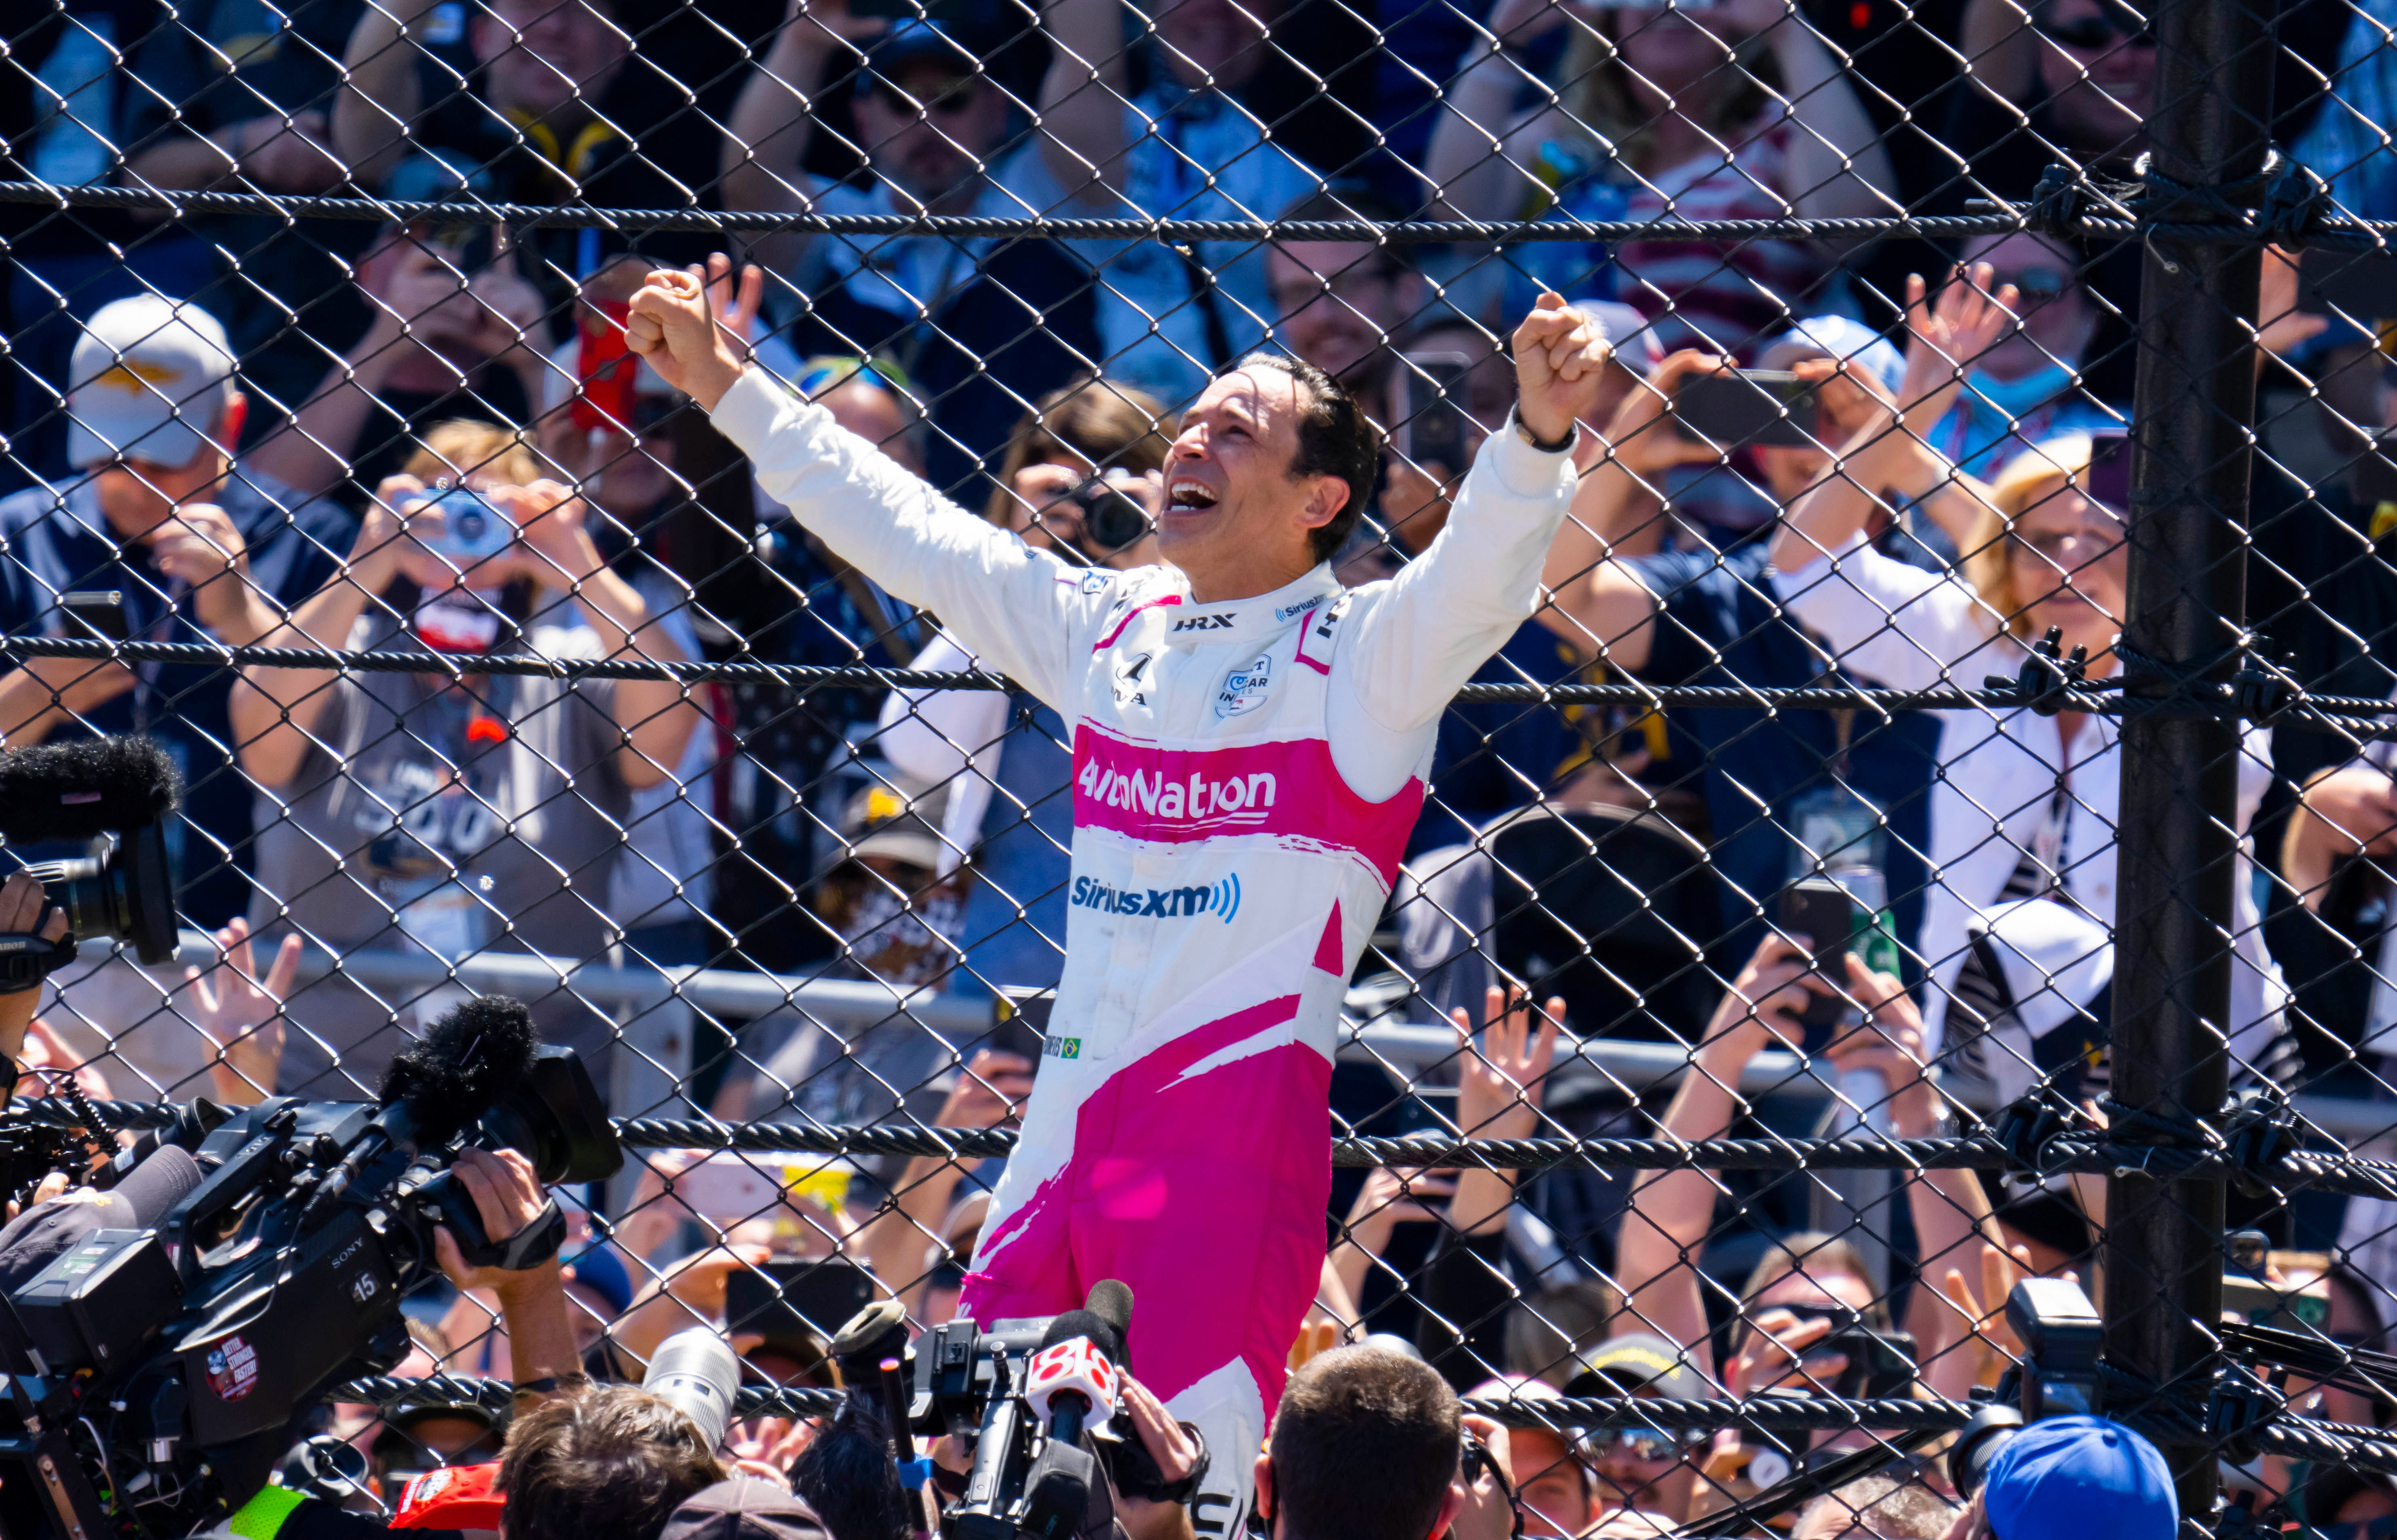 Helio Castroneves wins his record-tying fourth Indy 500